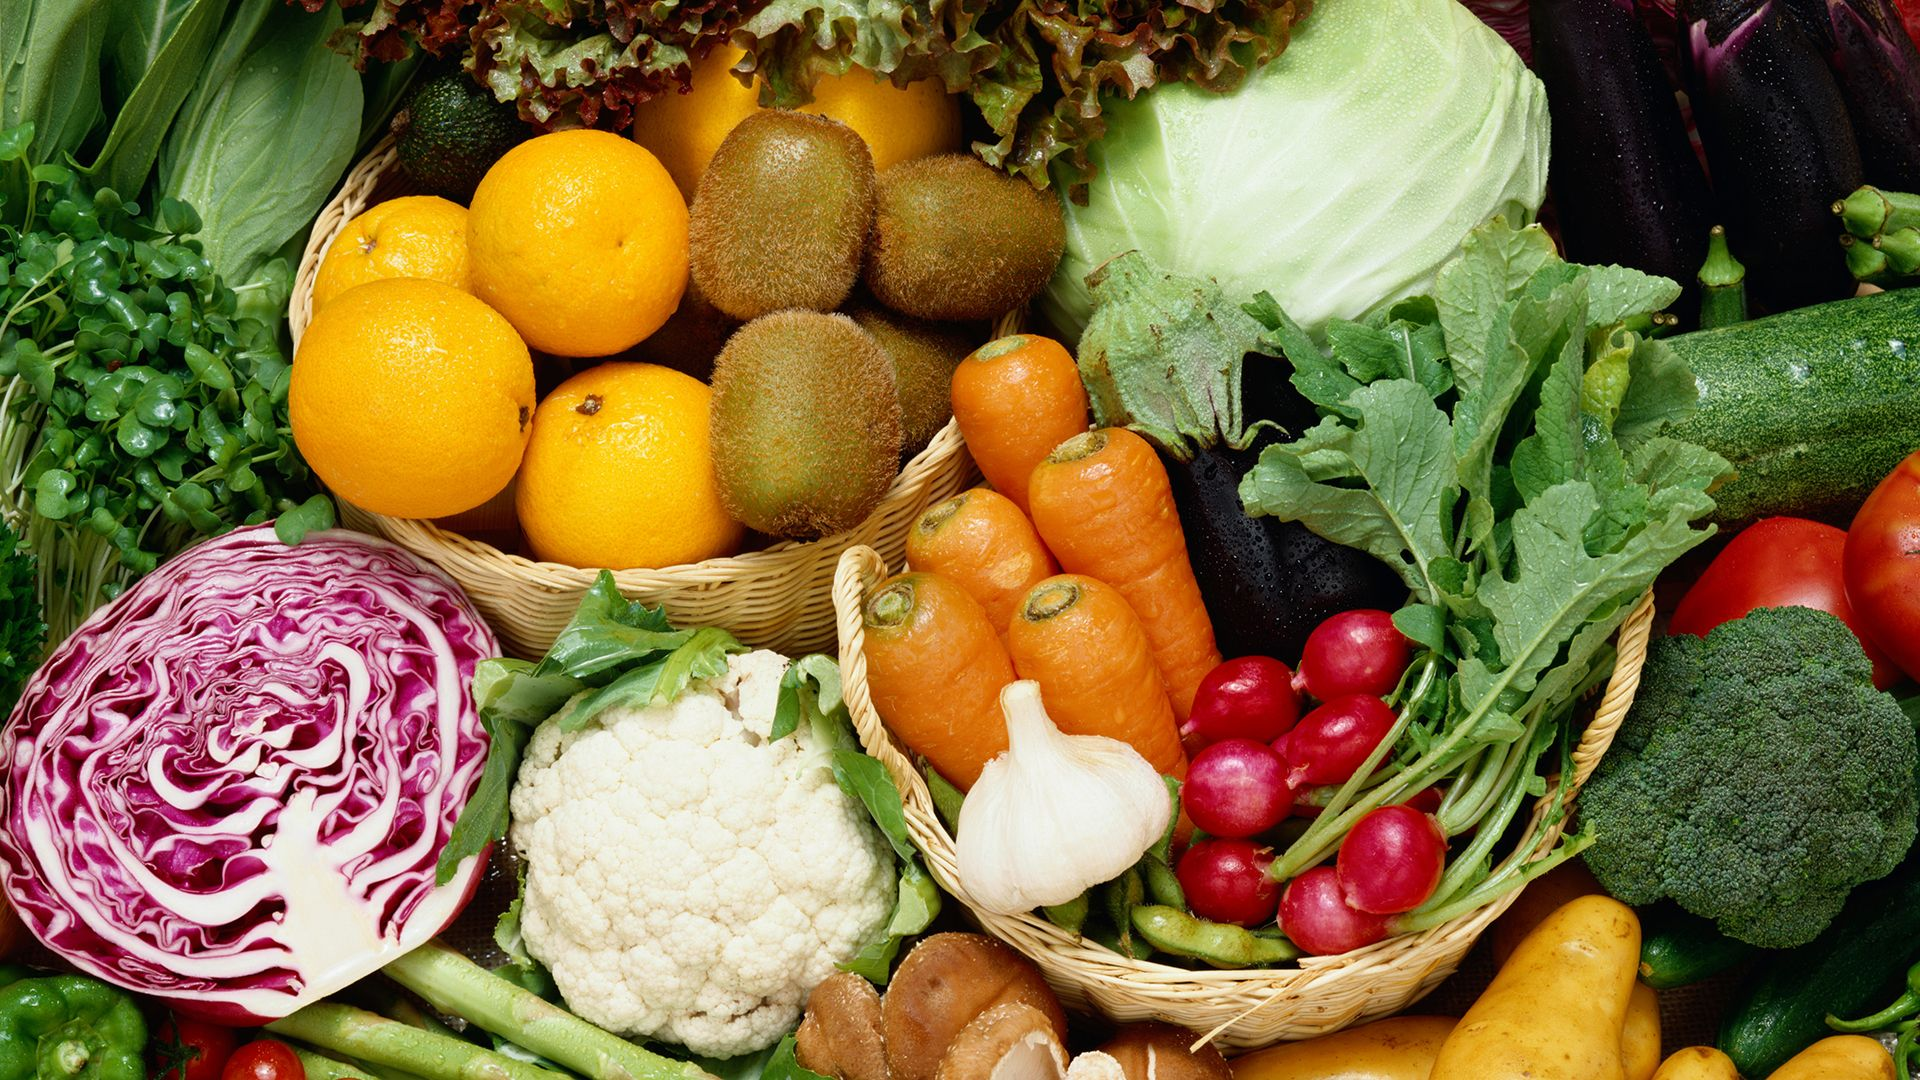 You're still not eating enough fruits and vegetables